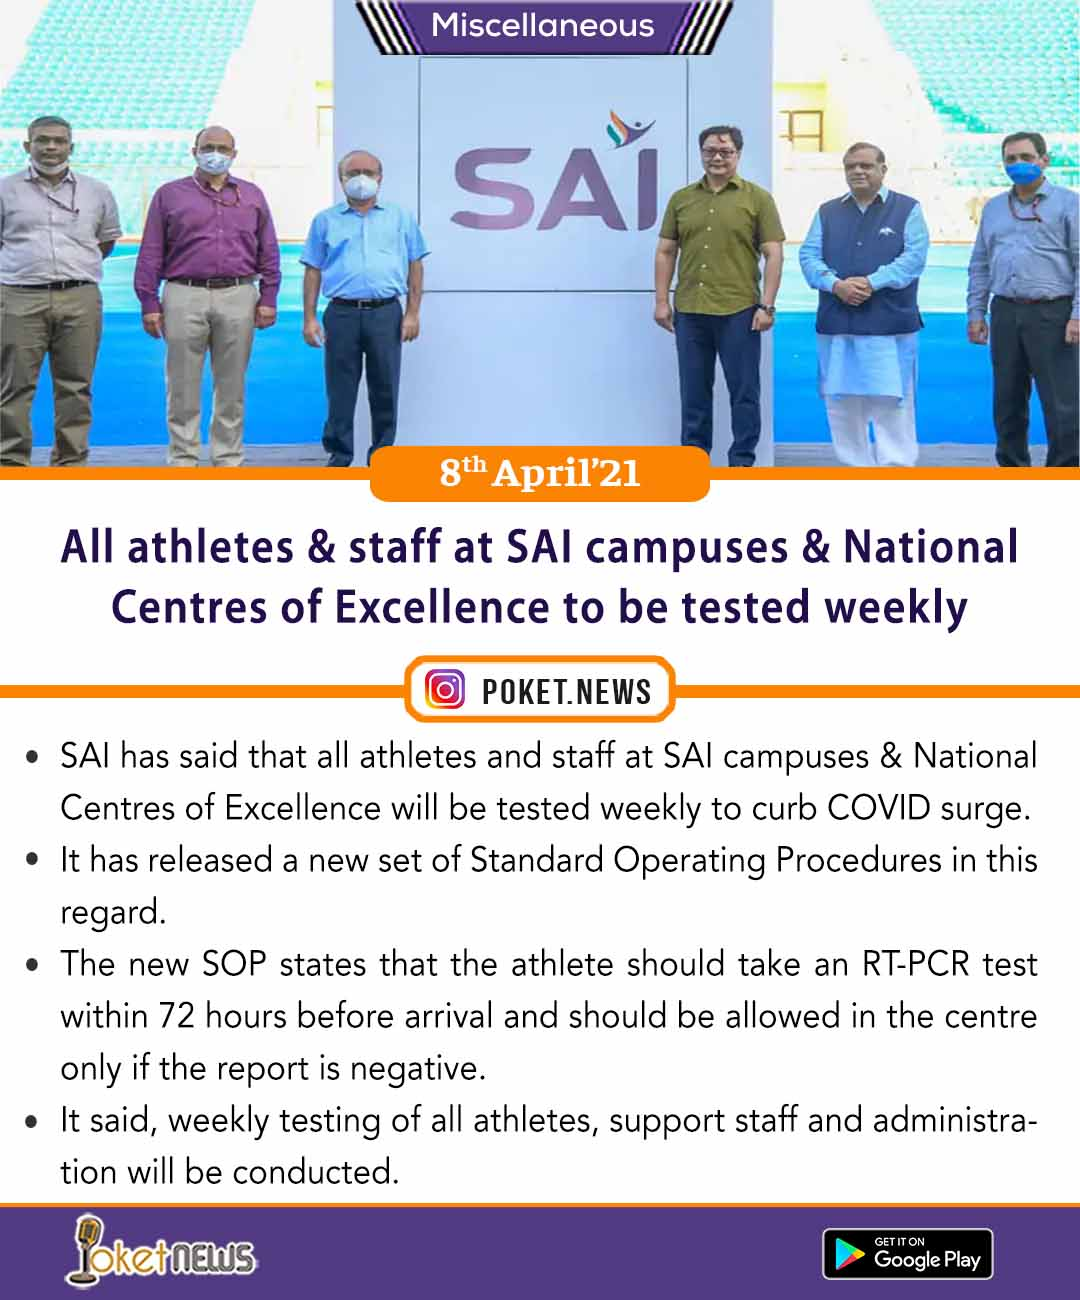 All athletes and staff at SAI campuses and National Centres of Excellence to be tested weekly